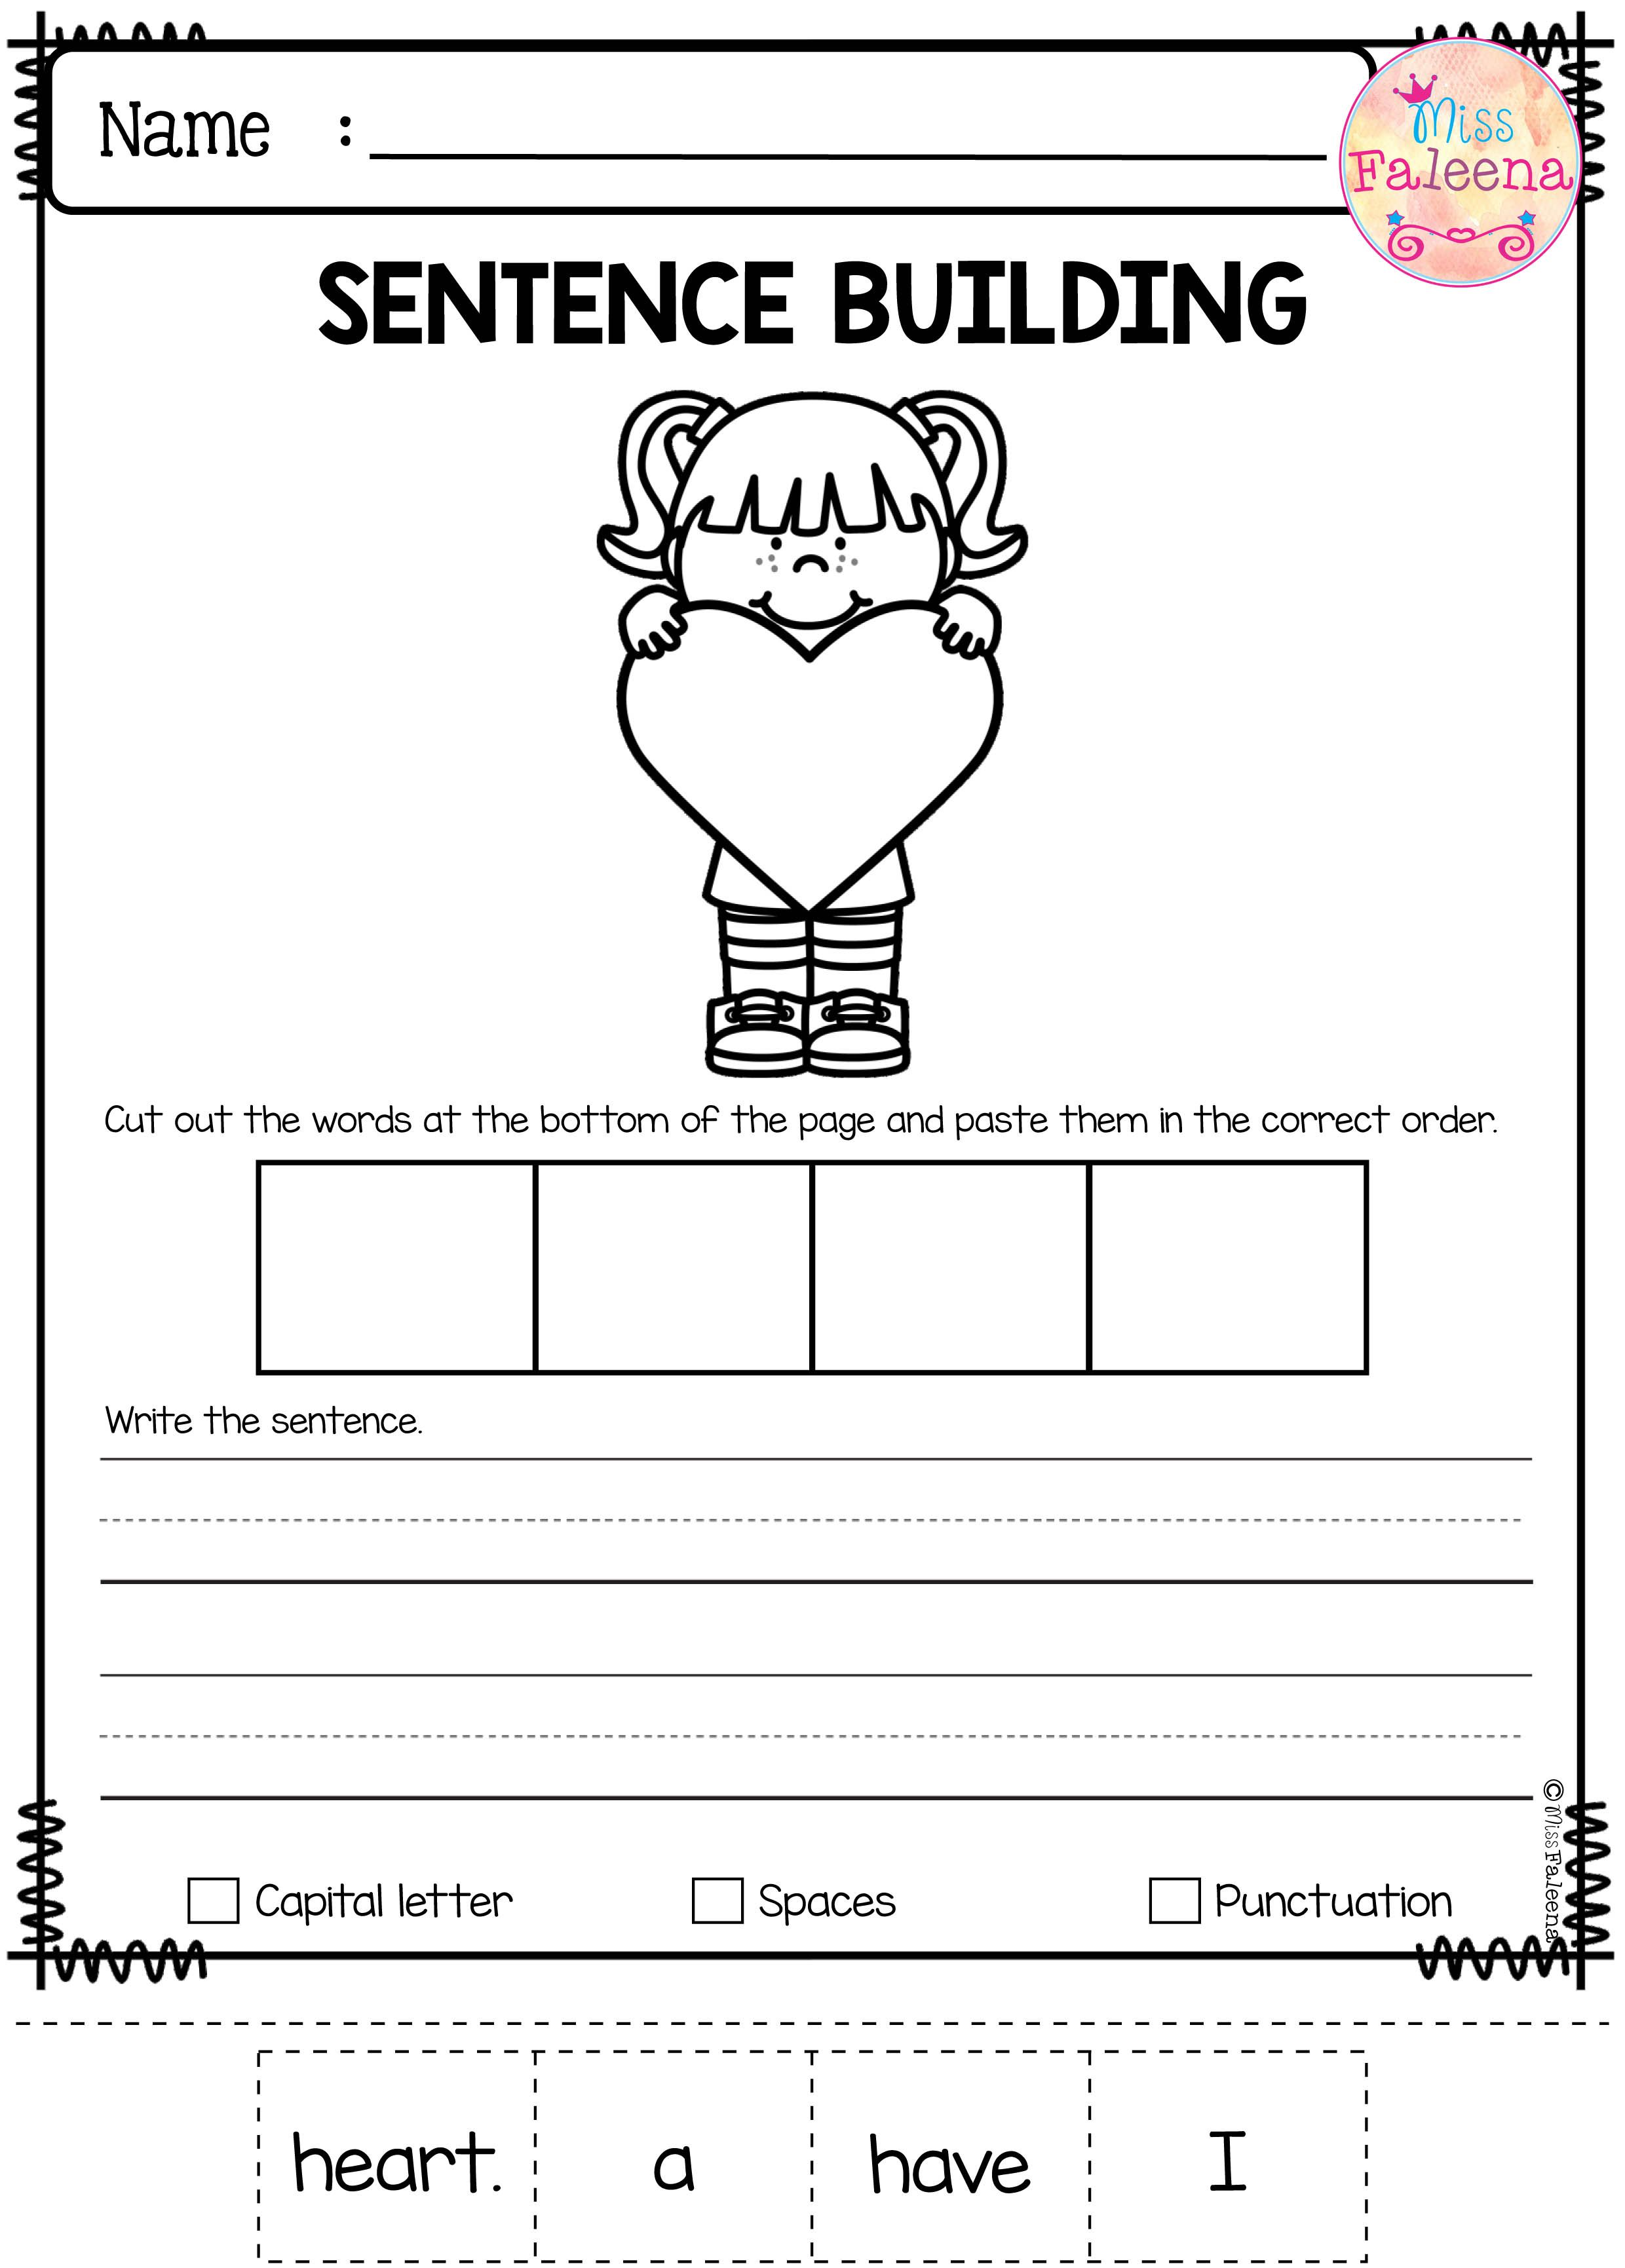 Worksheets Sentence Comprehension Worksheets february sentence building thinking skills writing and building